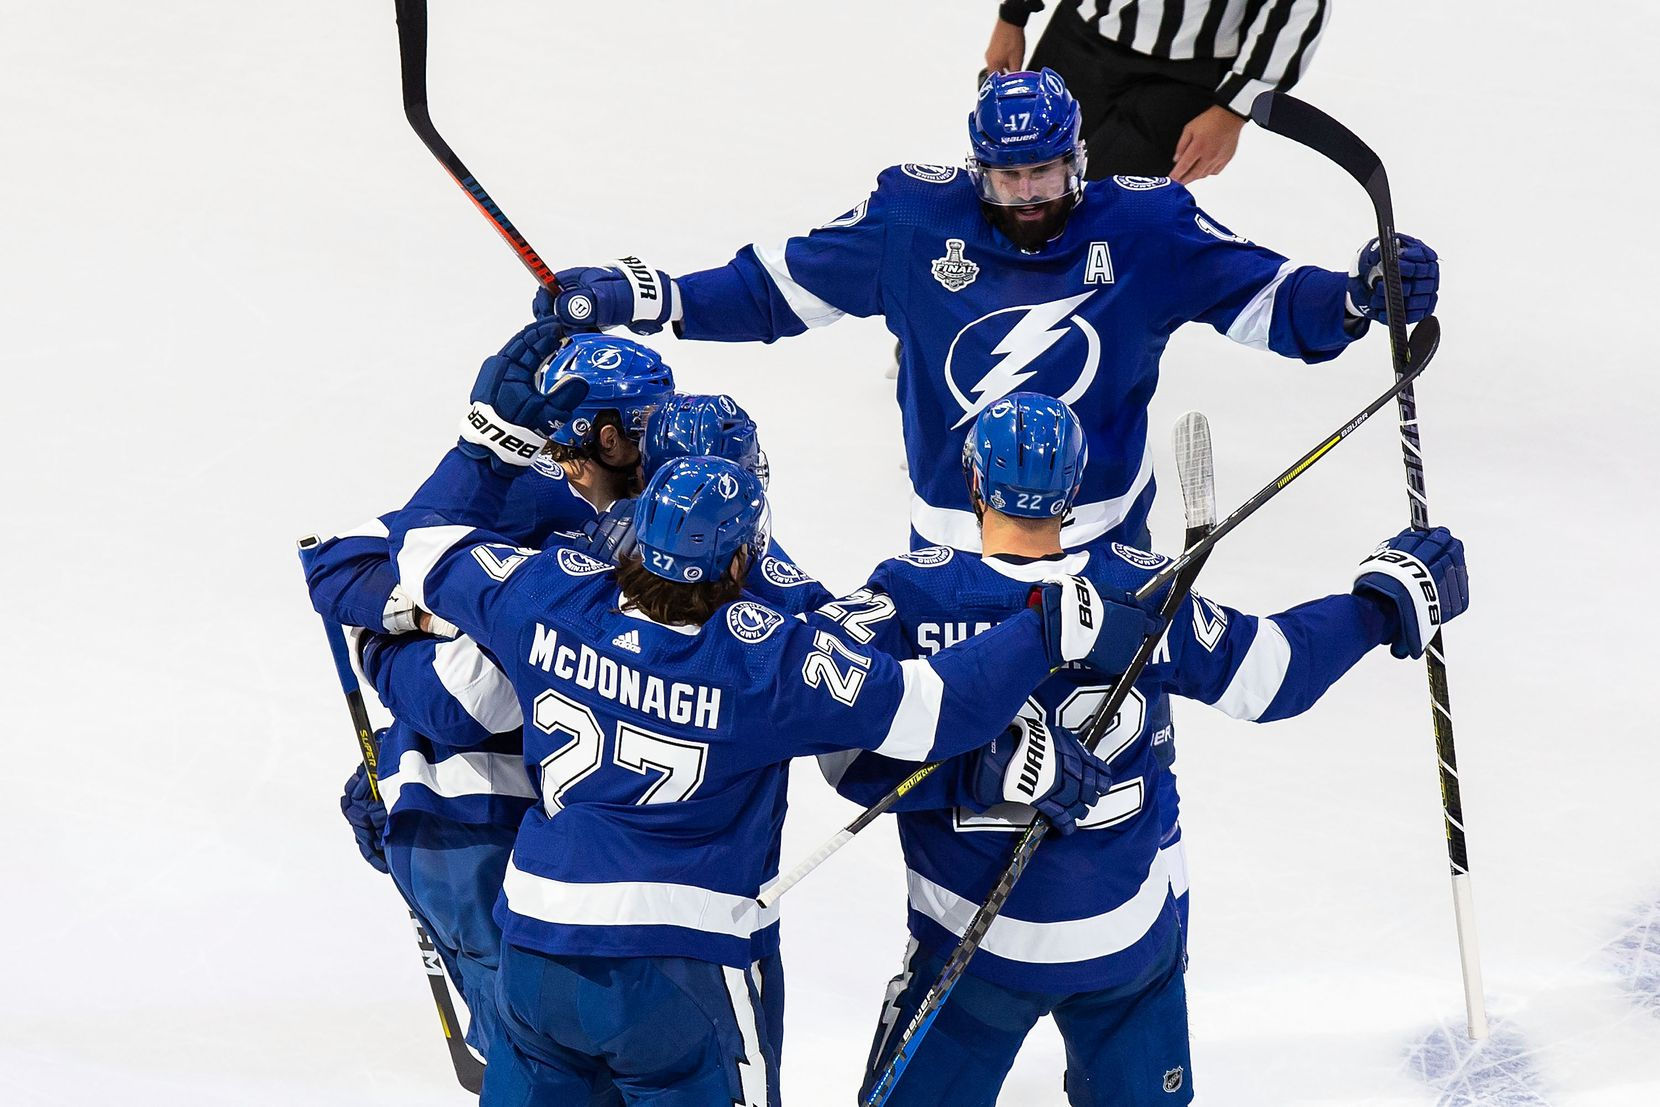 Alex Killorn (17), Ryan McDonagh (27) and Kevin Shattenkirk (22) of the Tampa Bay Lightning celebrate Shattenkirk's goal against the Dallas Stars during Game Two of the Stanley Cup Final at Rogers Place in Edmonton, Alberta, Canada on Monday, September 21, 2020. (Codie McLachlan/Special Contributor)